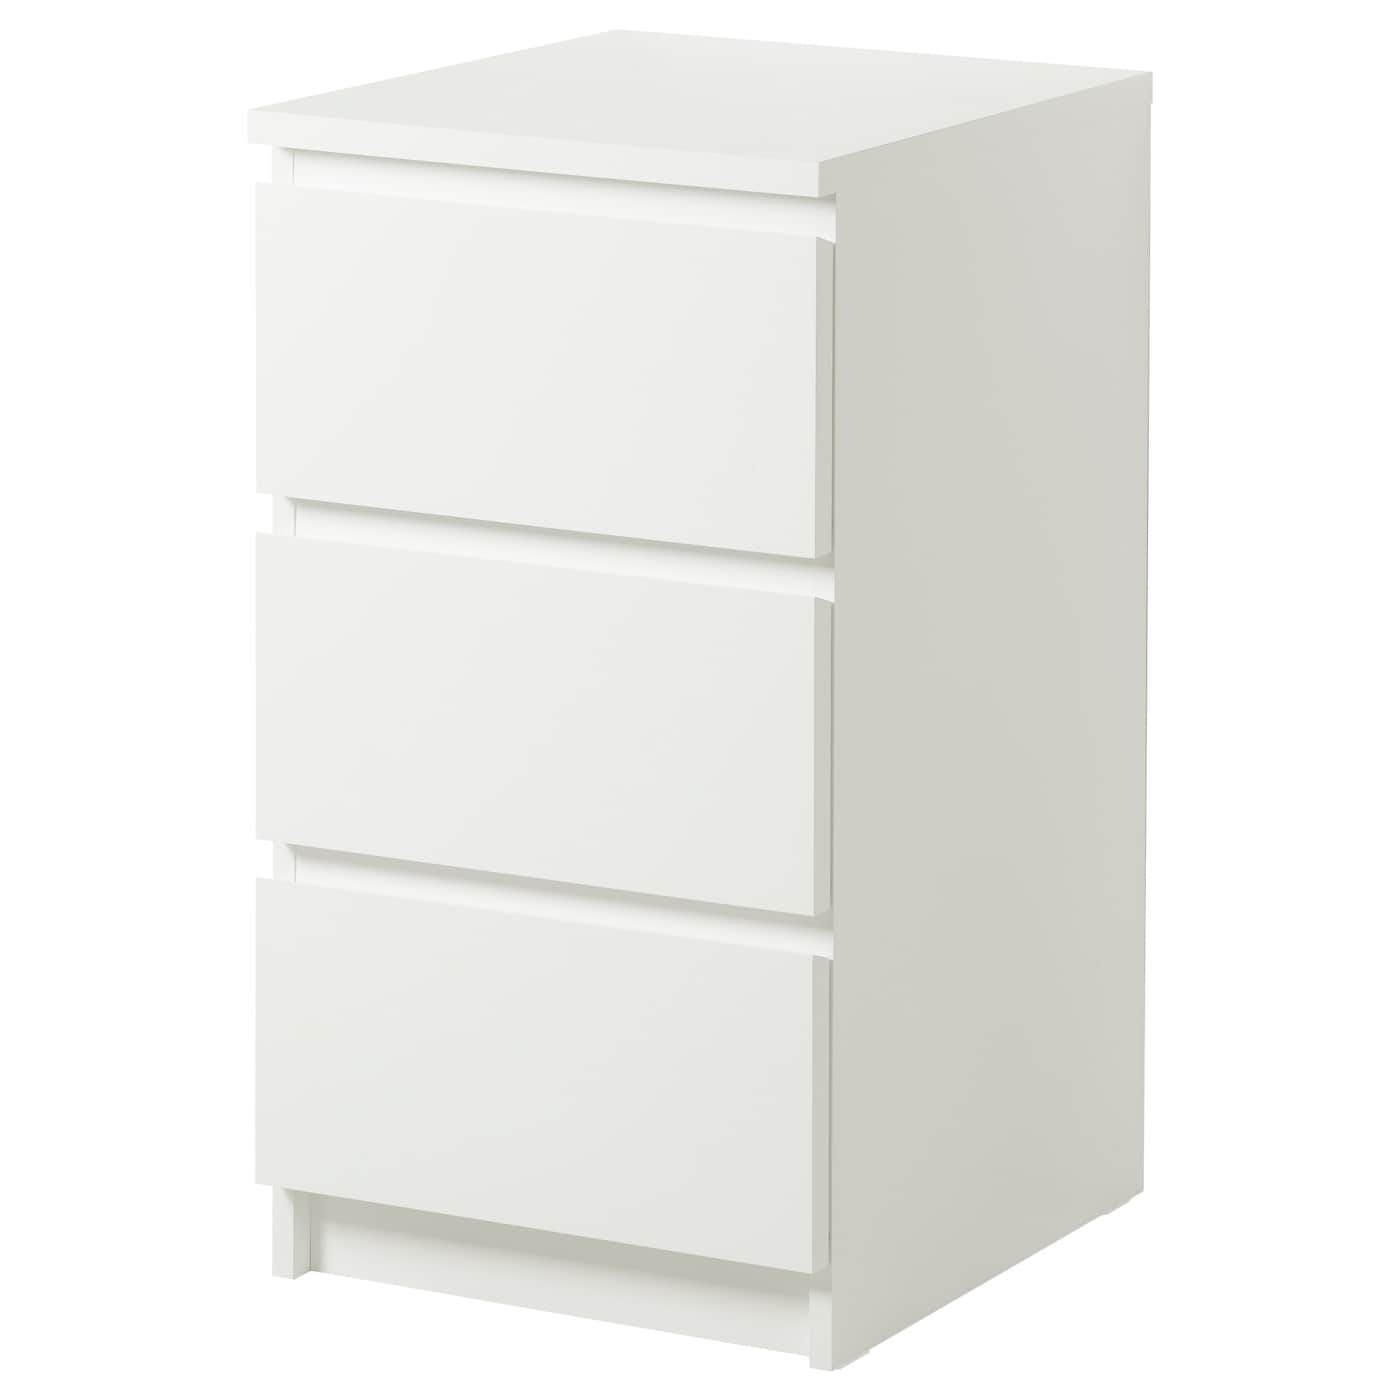 Malm chest of 3 drawers white 40x78 cm ikea for Kommode 100 x 60